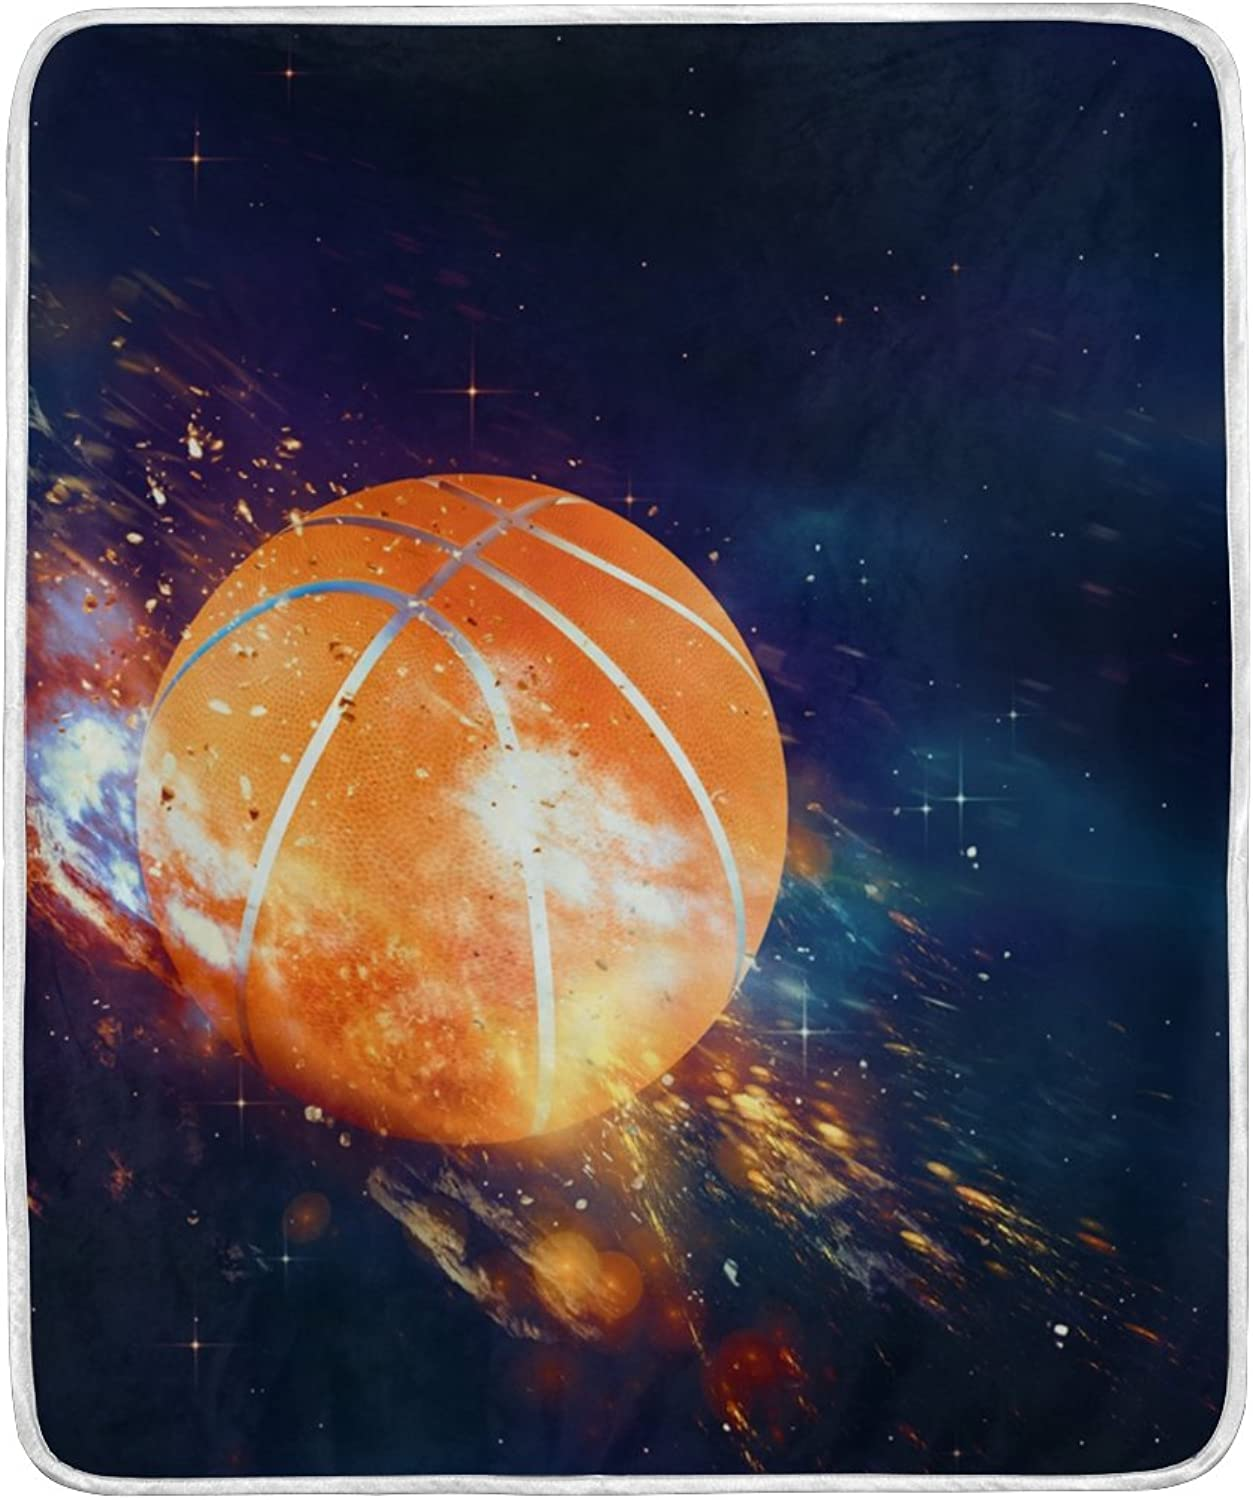 ALIREA Basketball Flies Super Soft Warm Blanket Lightweight Throw Blankets for Bed Couch Sofa Travelling Camping 60 x 50 Inch for Kids Boys Girls